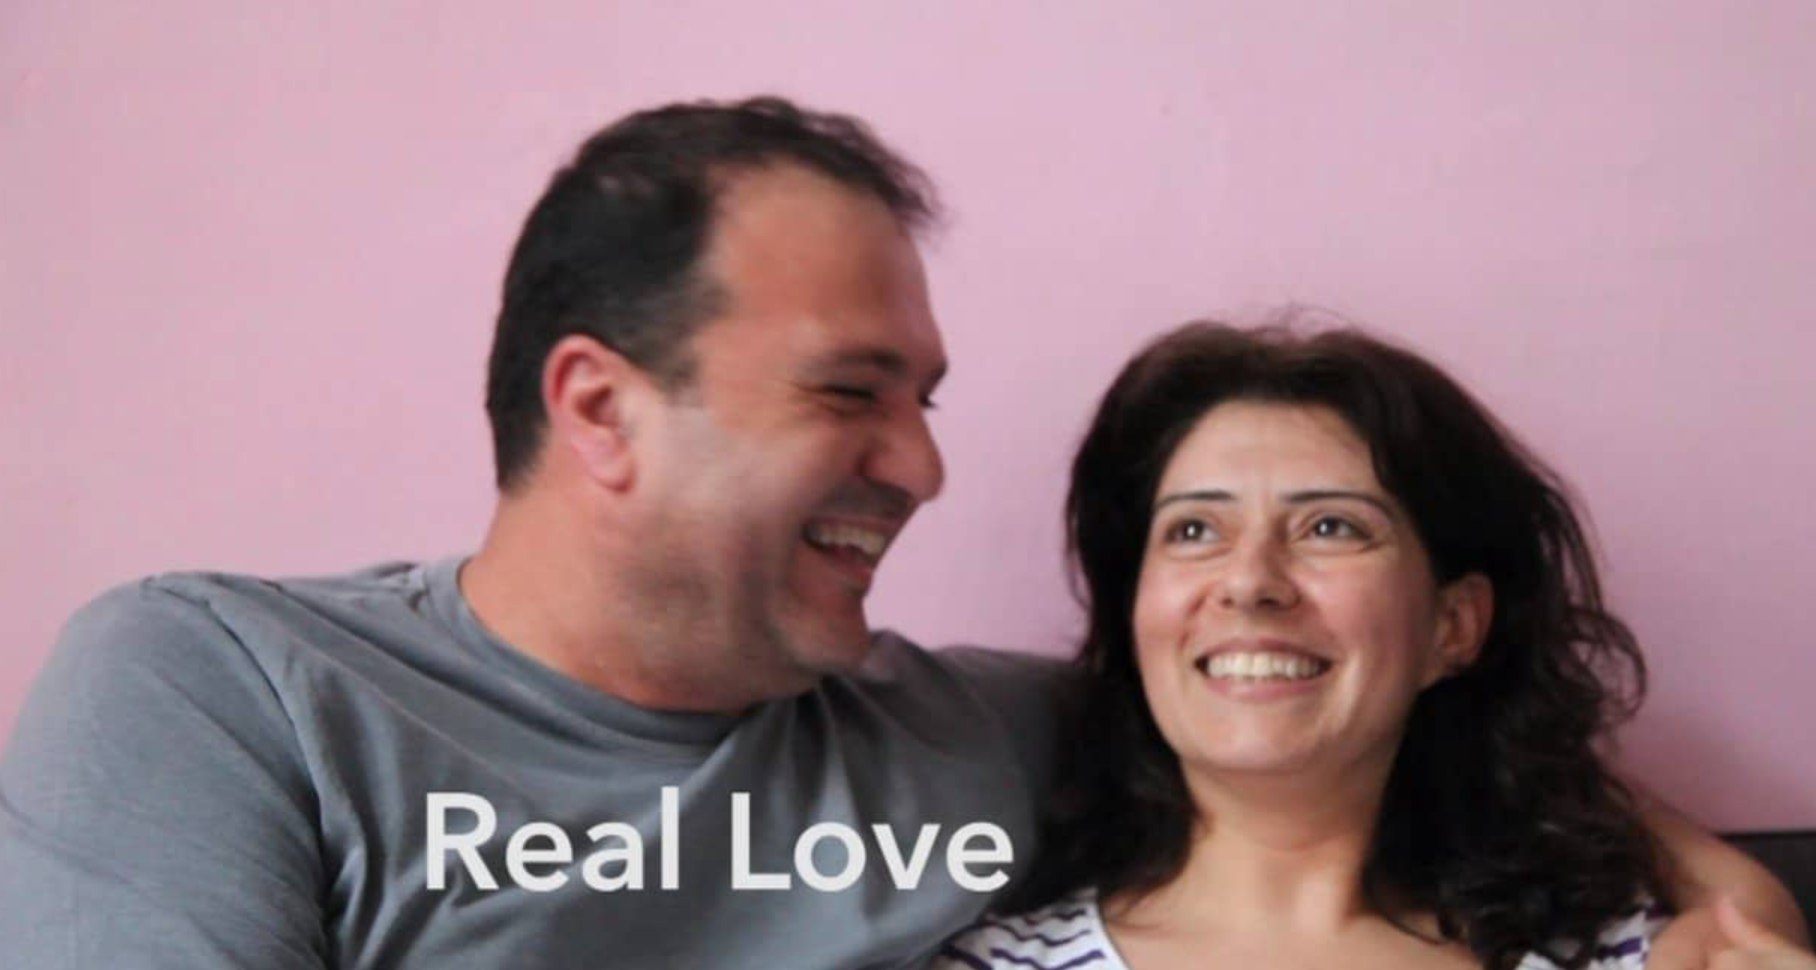 [VIDEO] Real Love Casts out Fear